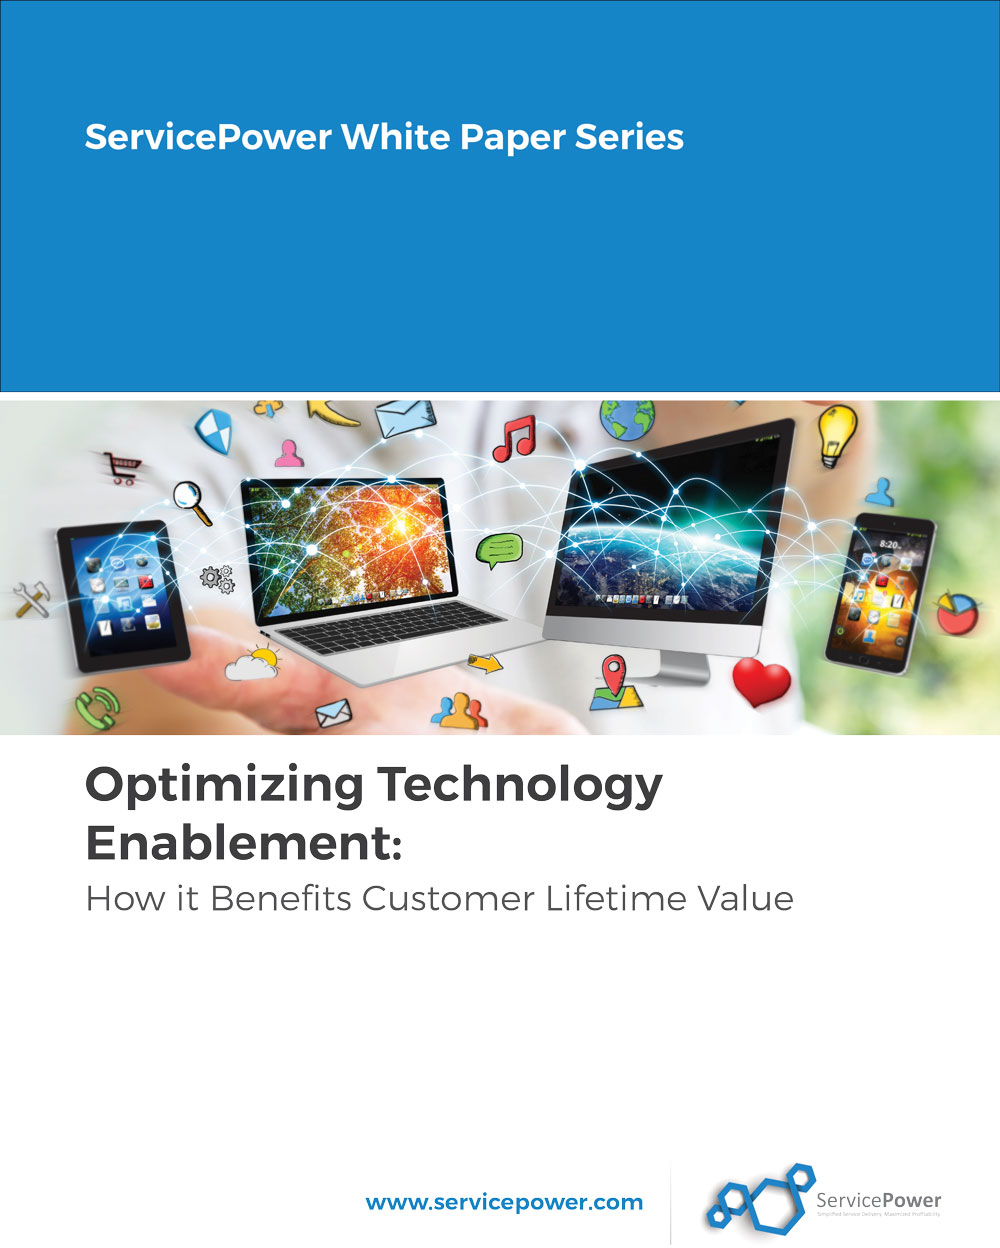 Optimizing-Technology-Enablement-1.jpg